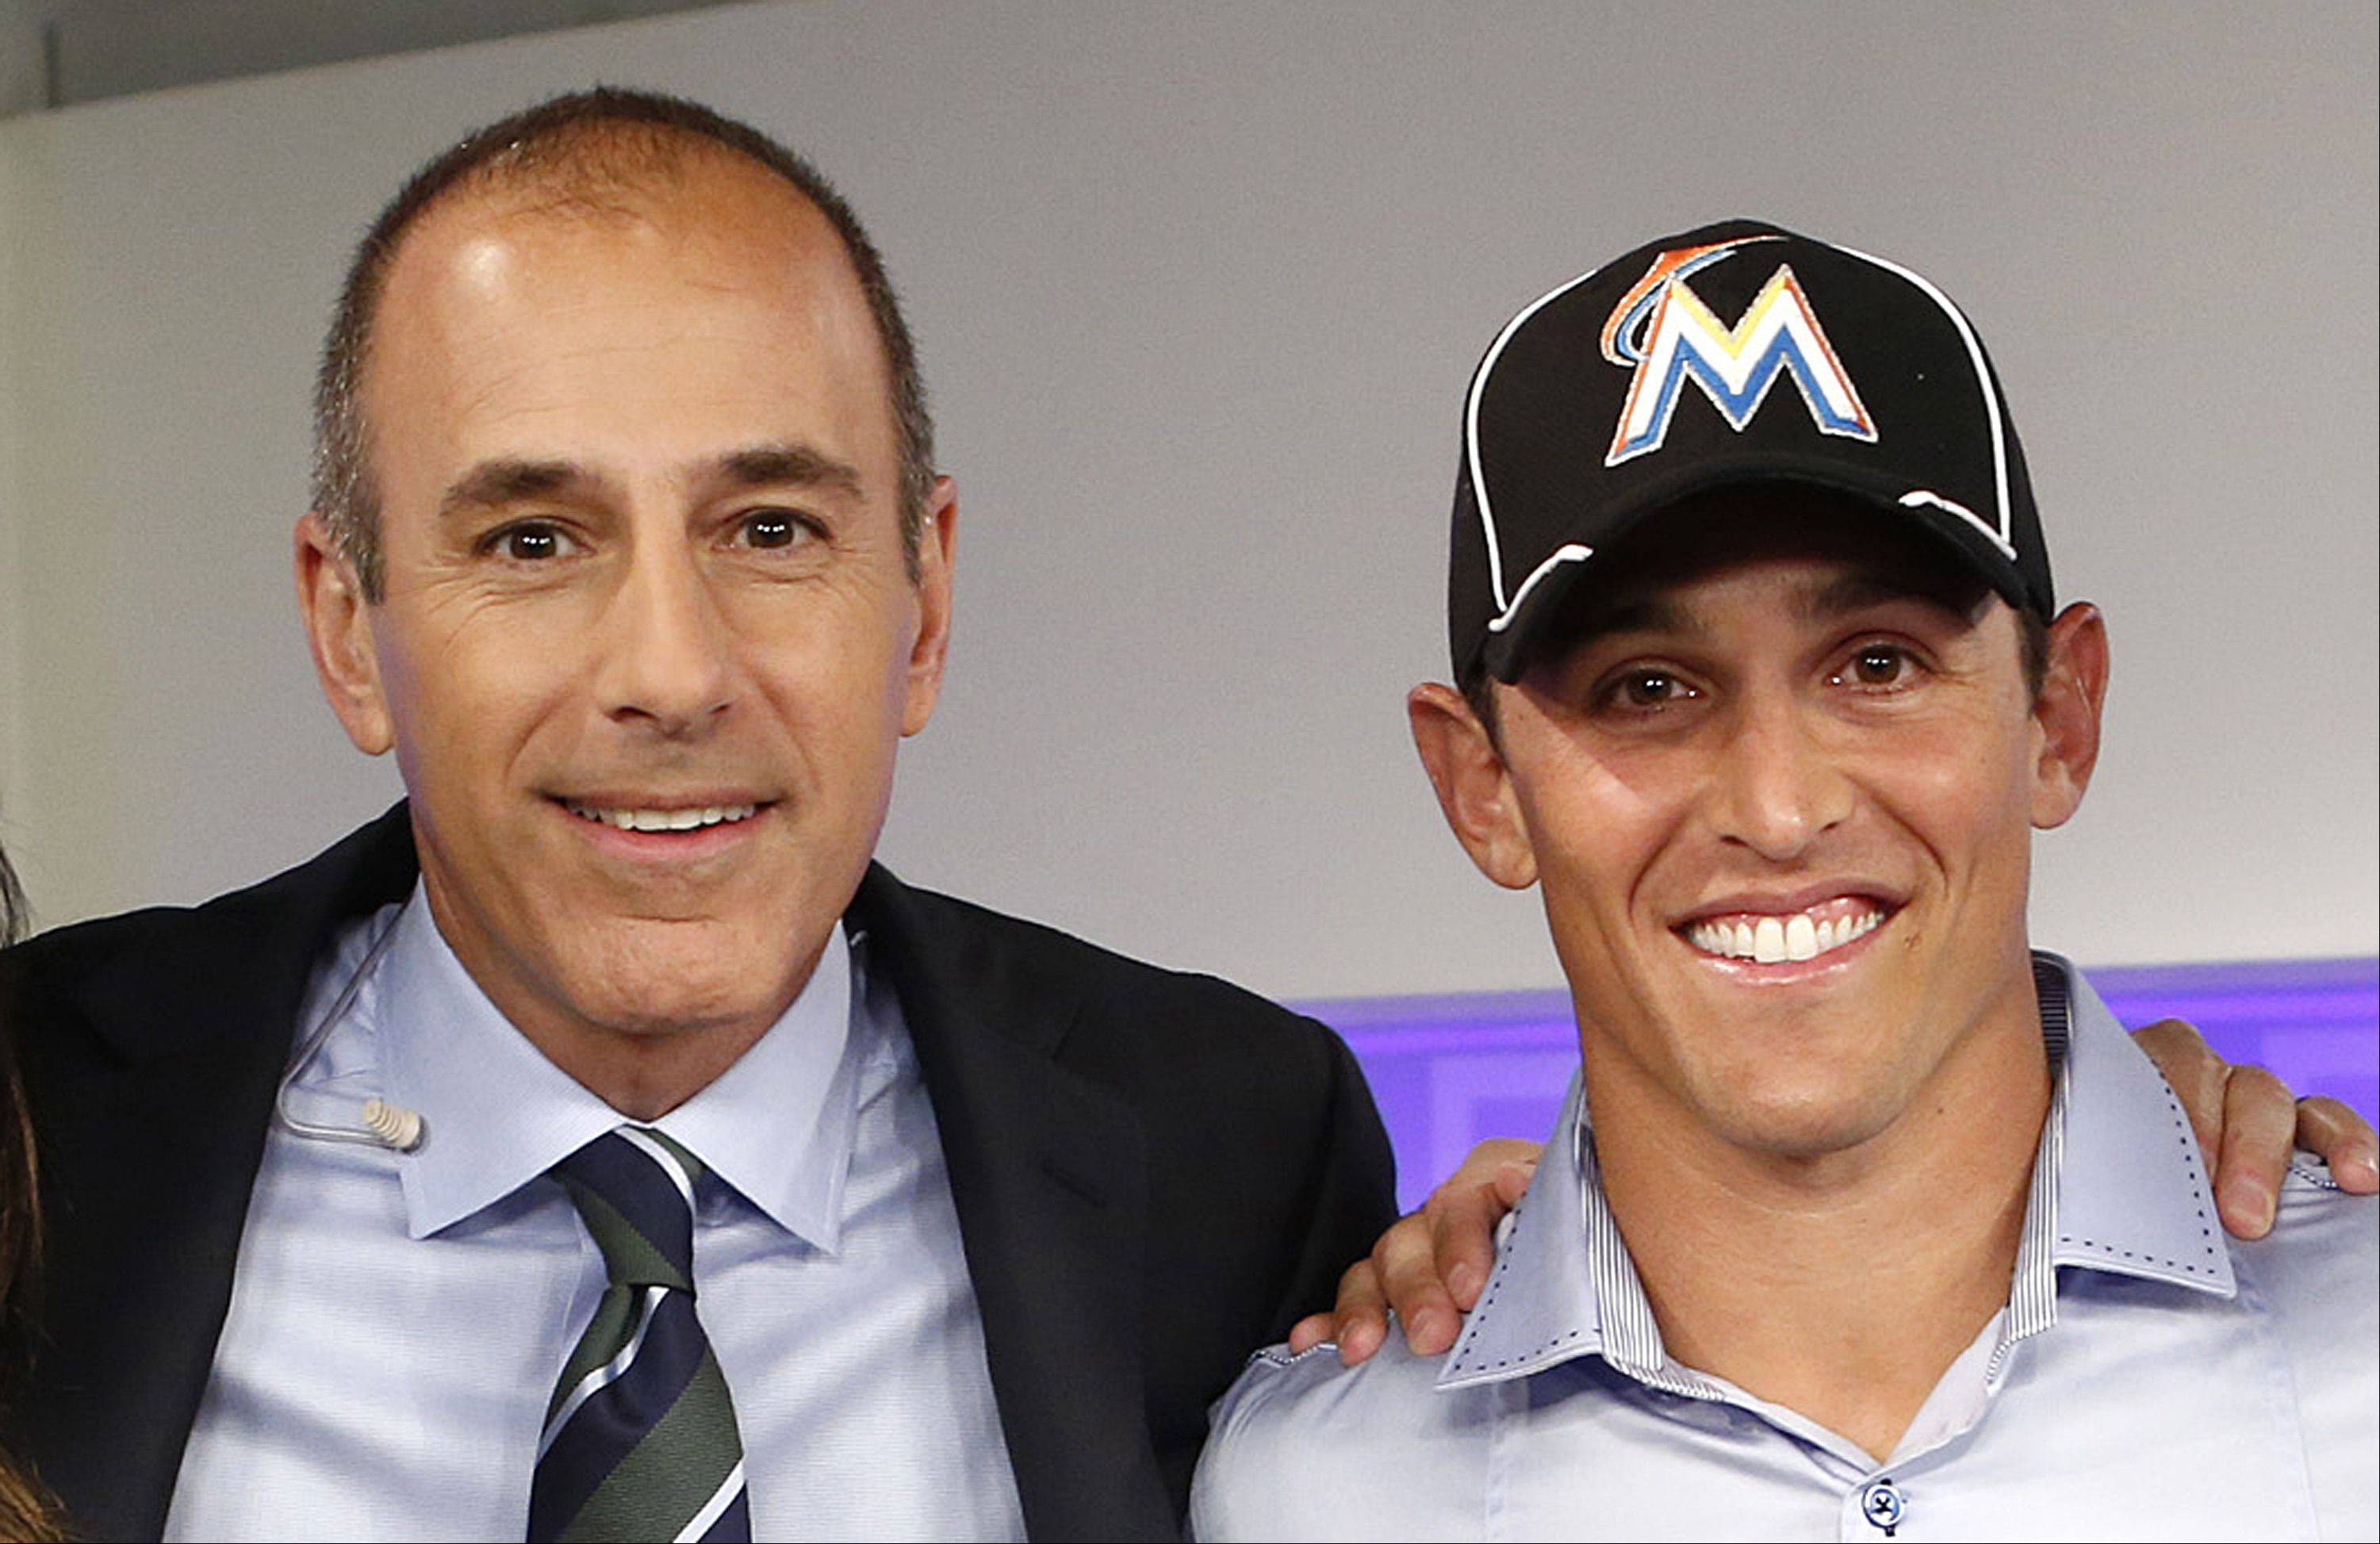 """Today"" show host Matt Lauer, left, poses with Adam Greenberg Thursday, after the Miami Marlins said they signed Greenberg to a one-day contract and will play him Tuesday against the New York Mets."